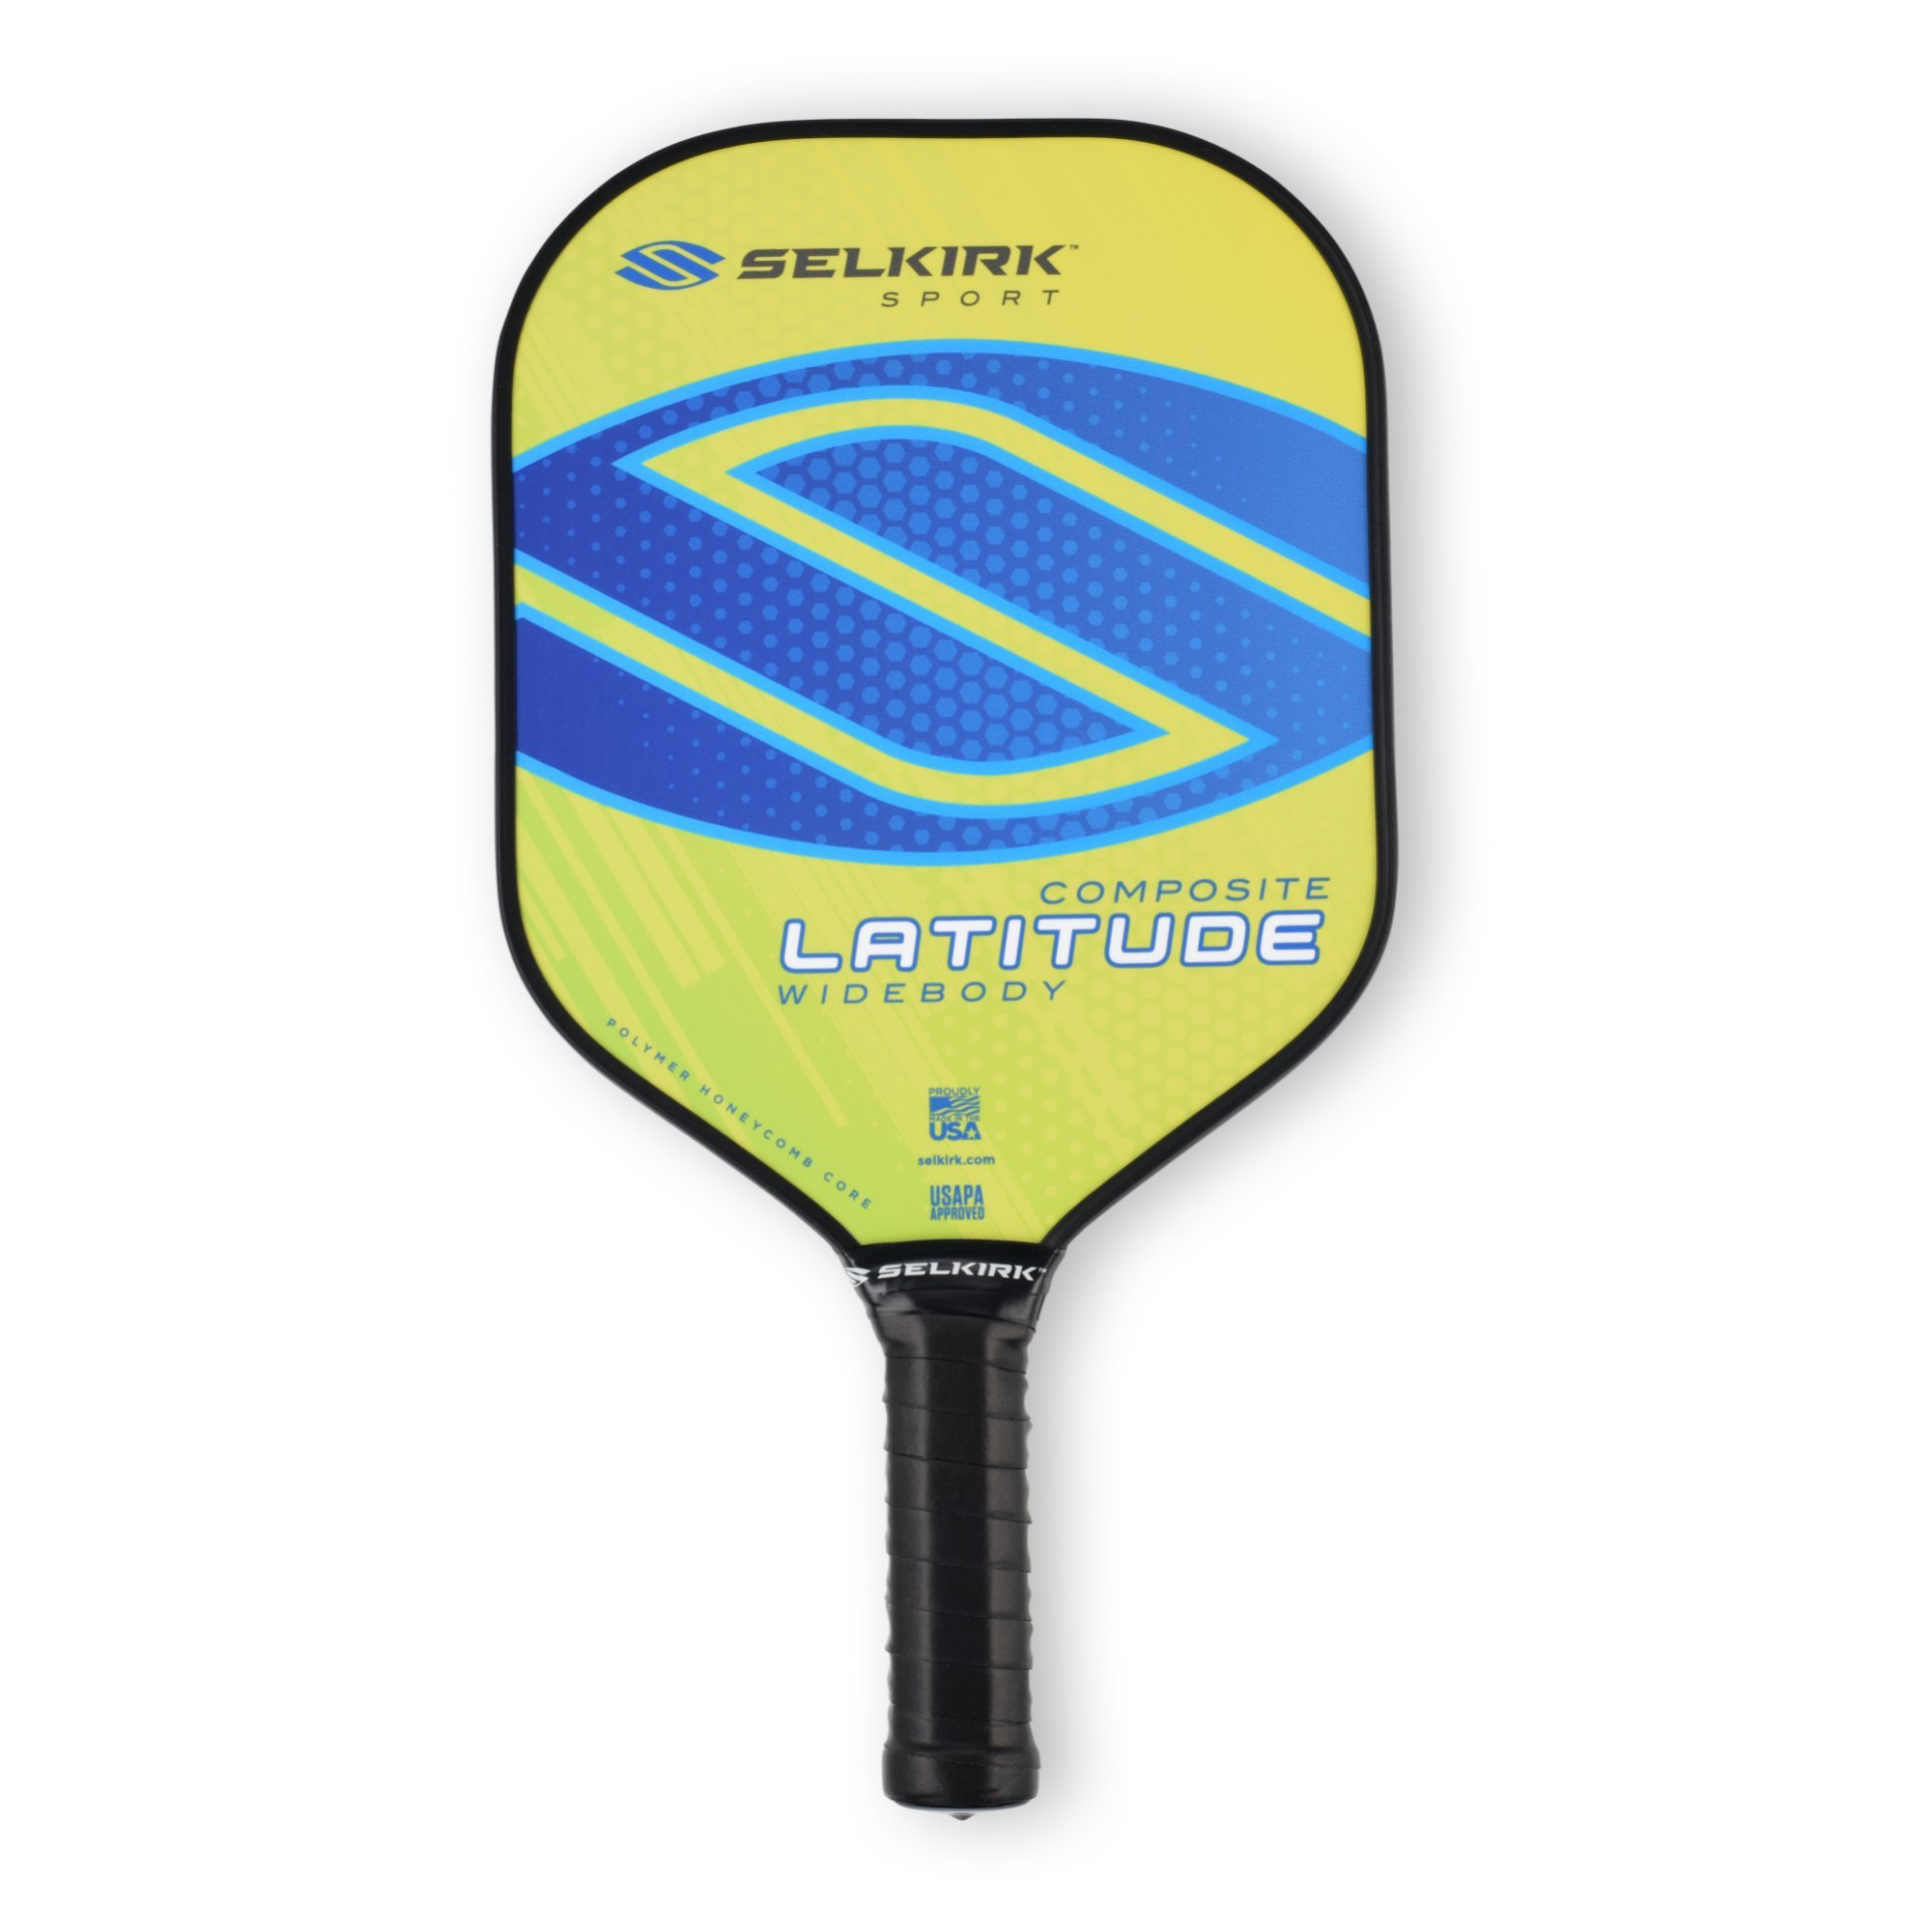 Selkirk Latitude Widebody Composite Pickleball Paddle - USAPA Approved - PowerCore Polymer Core - PolyFlex Composite Surface - EdgeSentry Protection - ThinGrip Handle (Lemon Blueberry) by Selkirk Sport